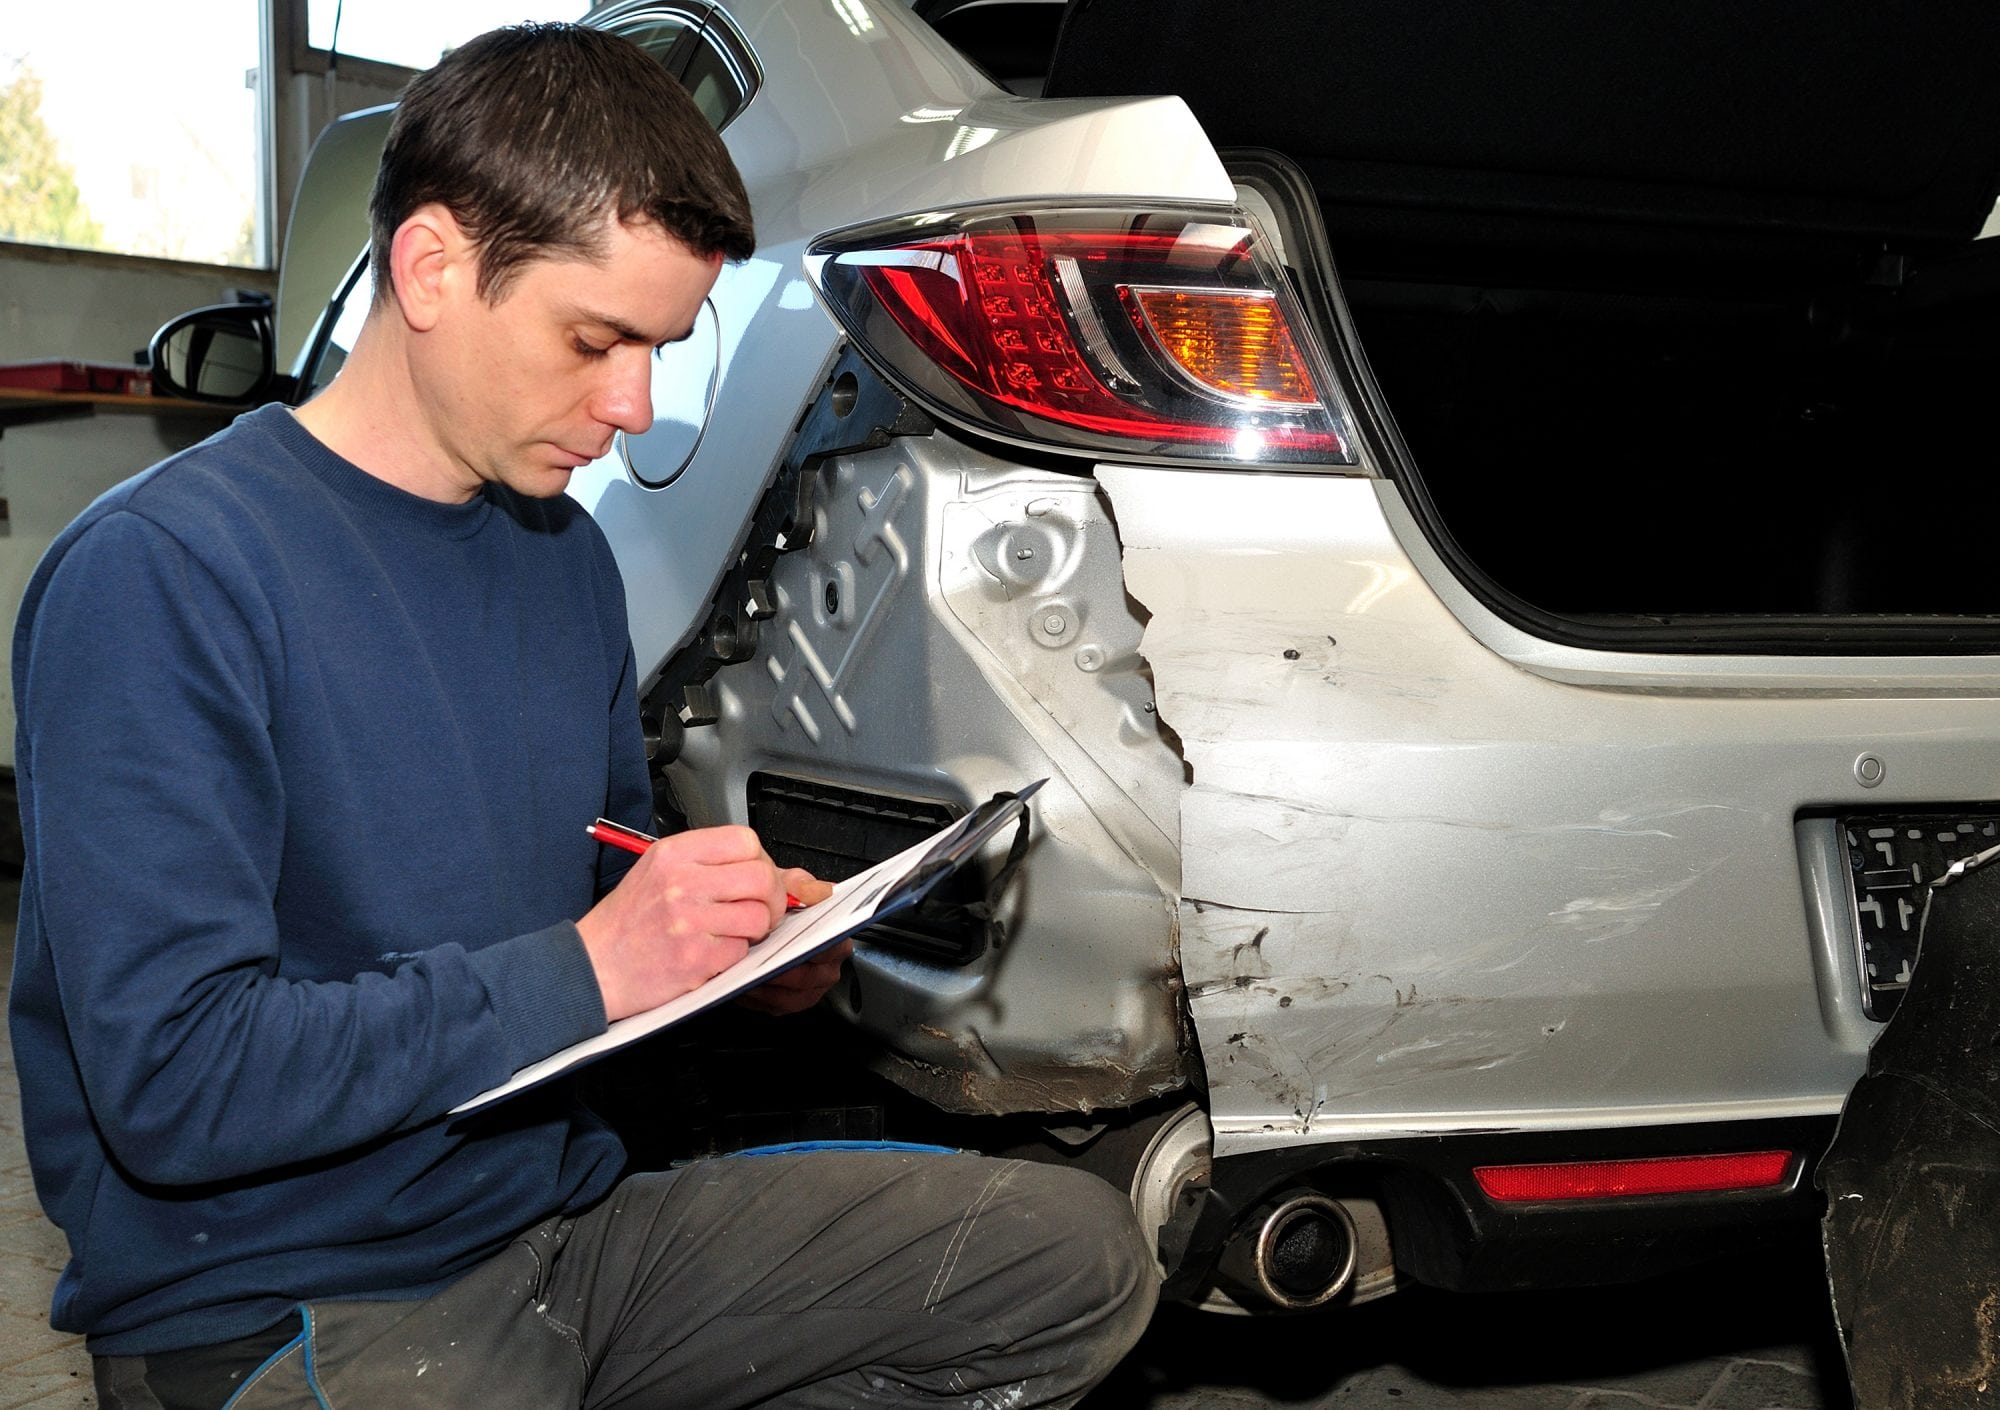 Dealing With Your Insurance Company After A Car Accident